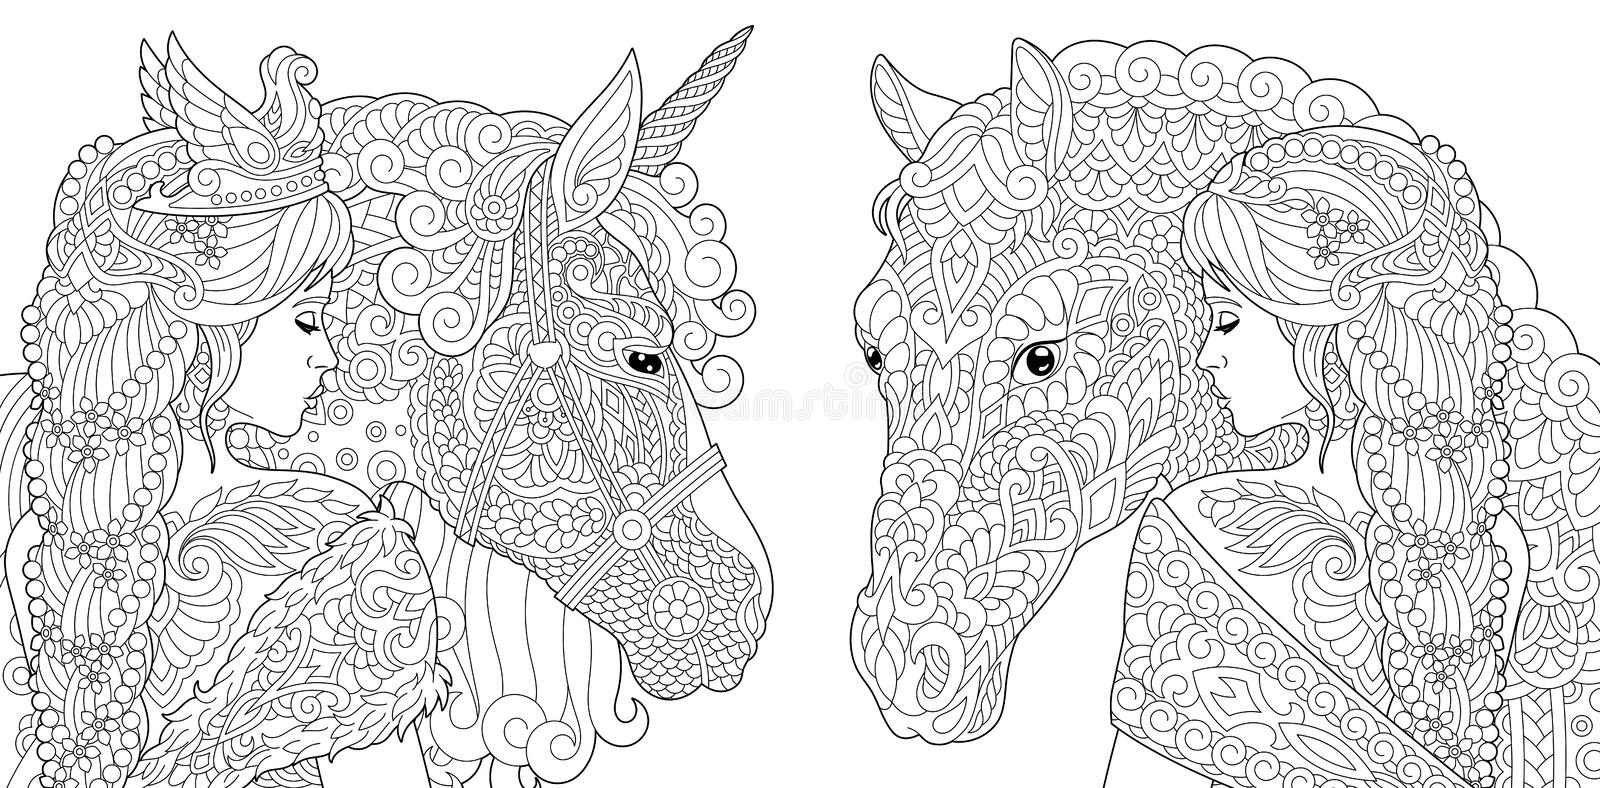 Fantasy Coloring Pages royalty free illustration